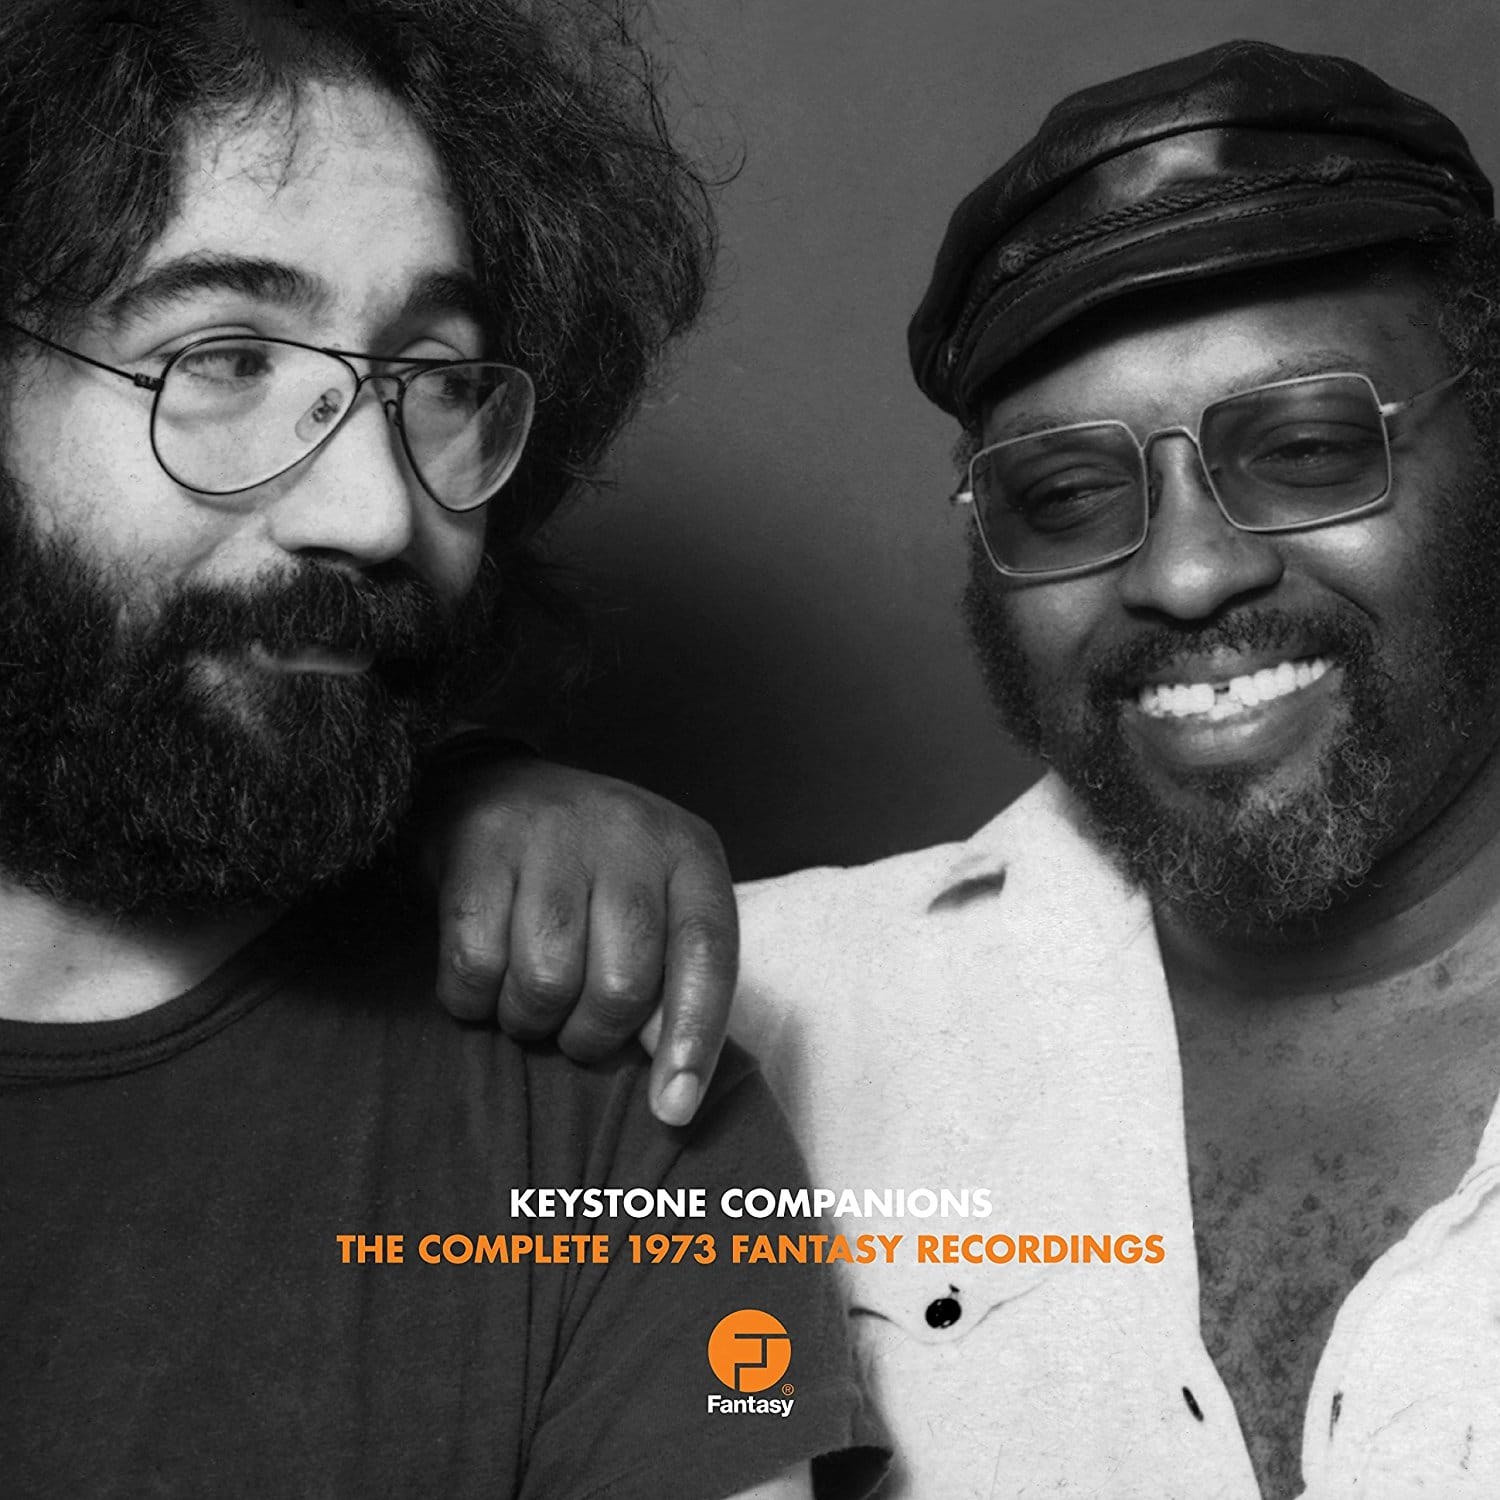 merl saunders and jerry garcia the complete 1973 fantasy recordings american songwriter. Black Bedroom Furniture Sets. Home Design Ideas